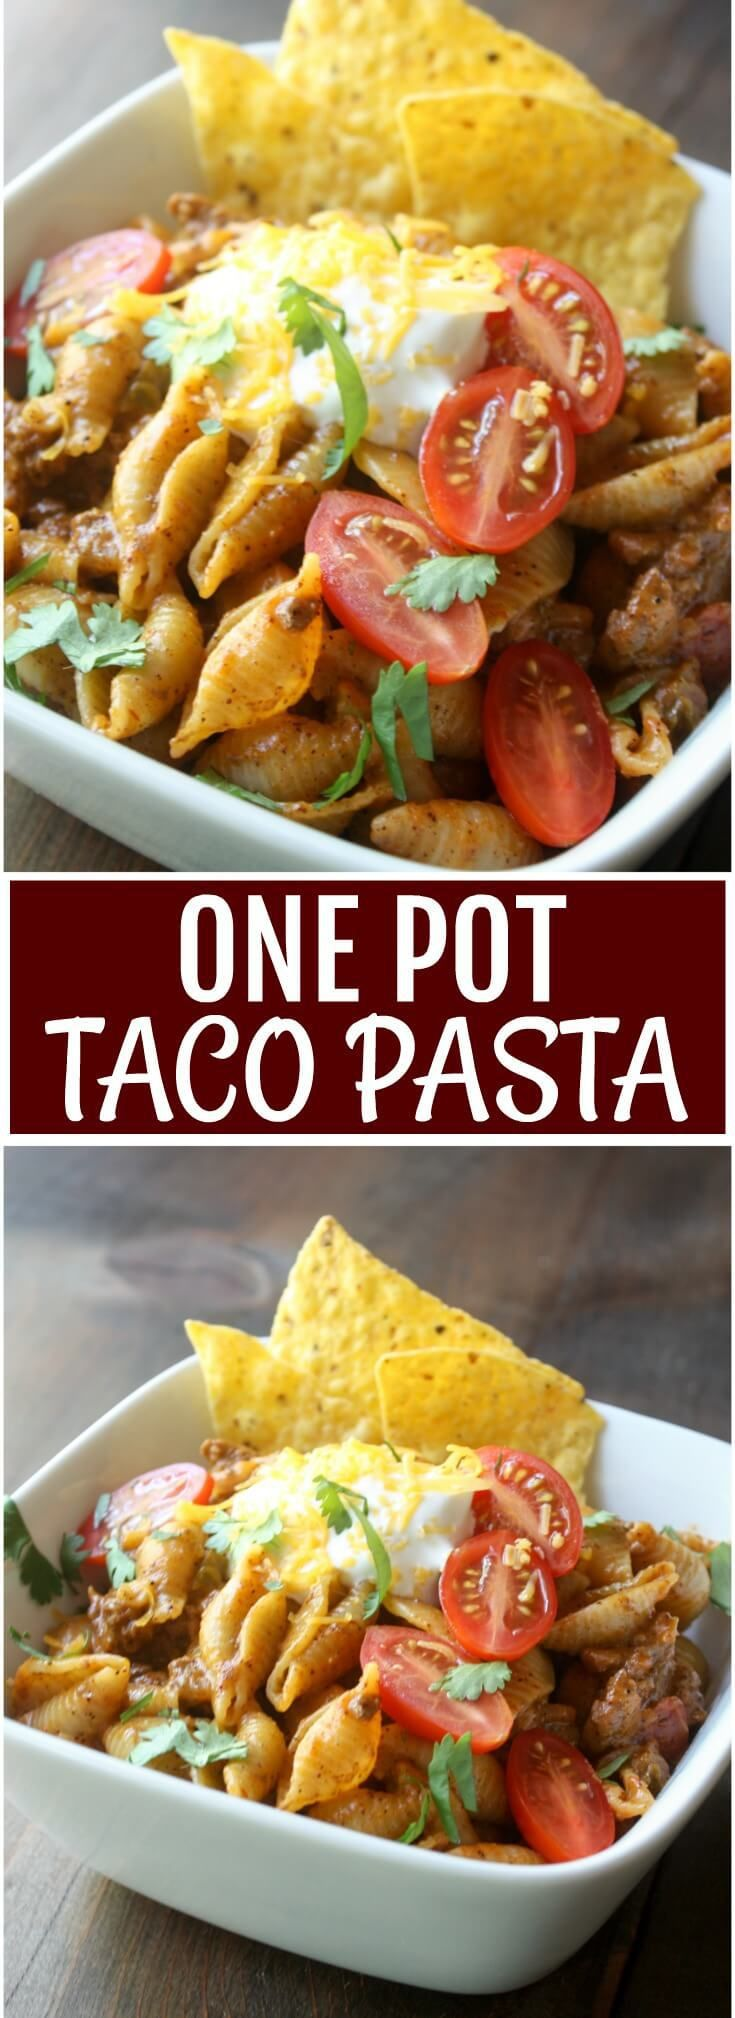 Cheesy beefy taco pasta is what's for dinner. Kids love this One Pot Taco Pasta recipe so be sure to put on this week's menu.: